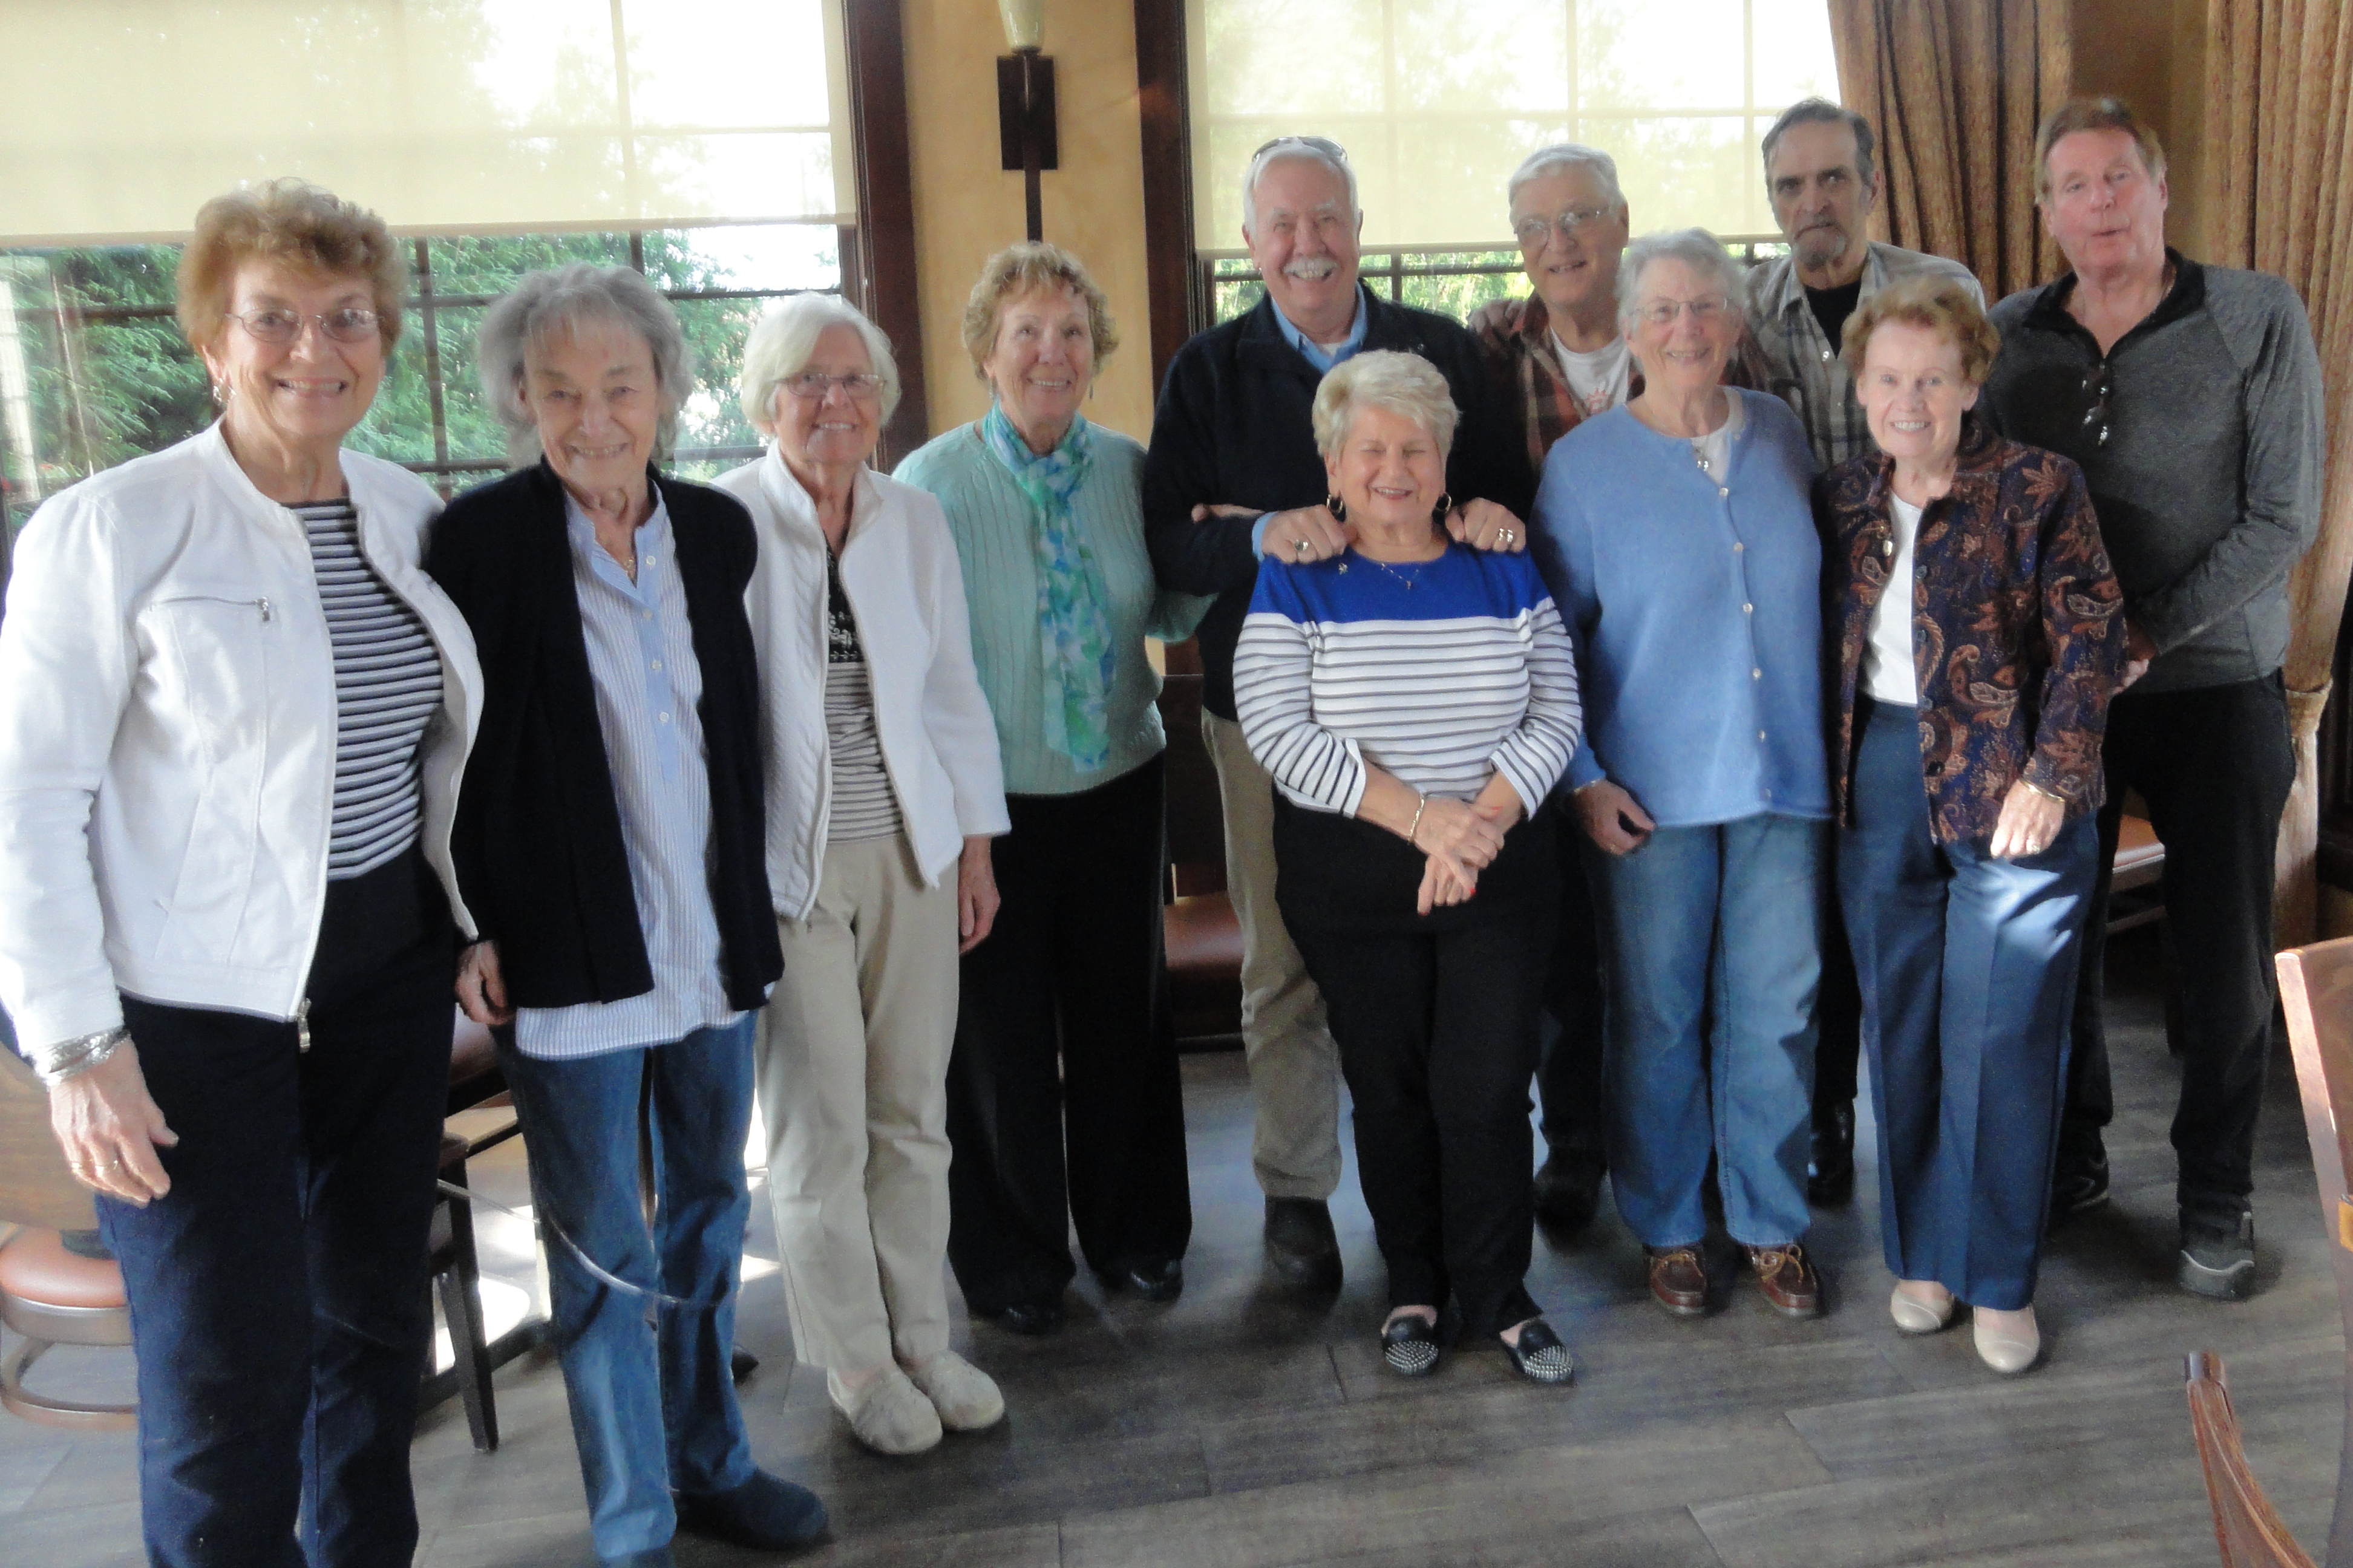 The Class of 1959 reunion committee standing as a group.